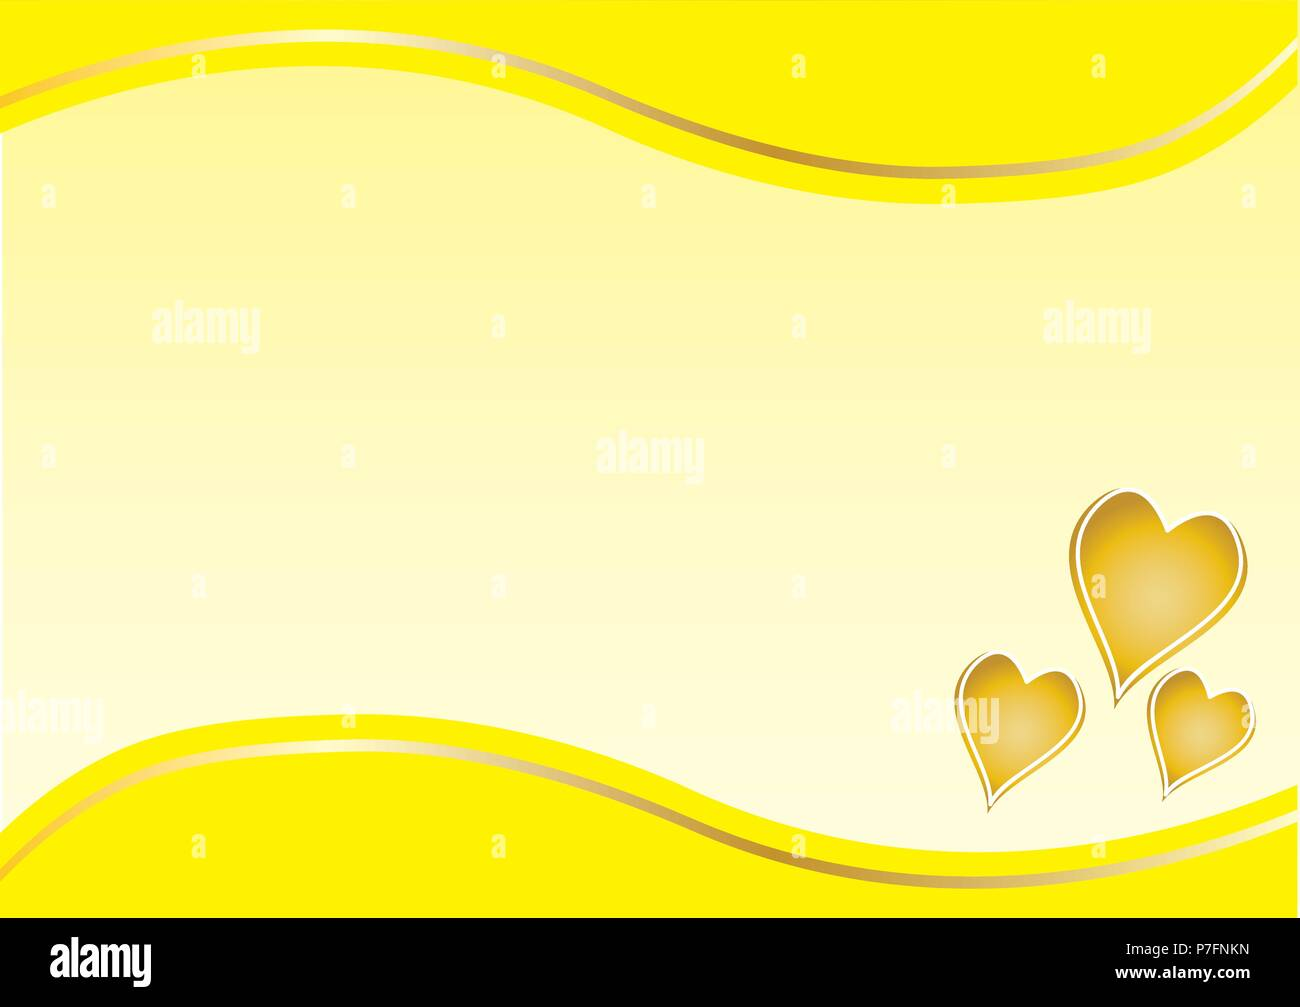 gold hearts with yellow border on the top and bottom with cream background - Stock Vector